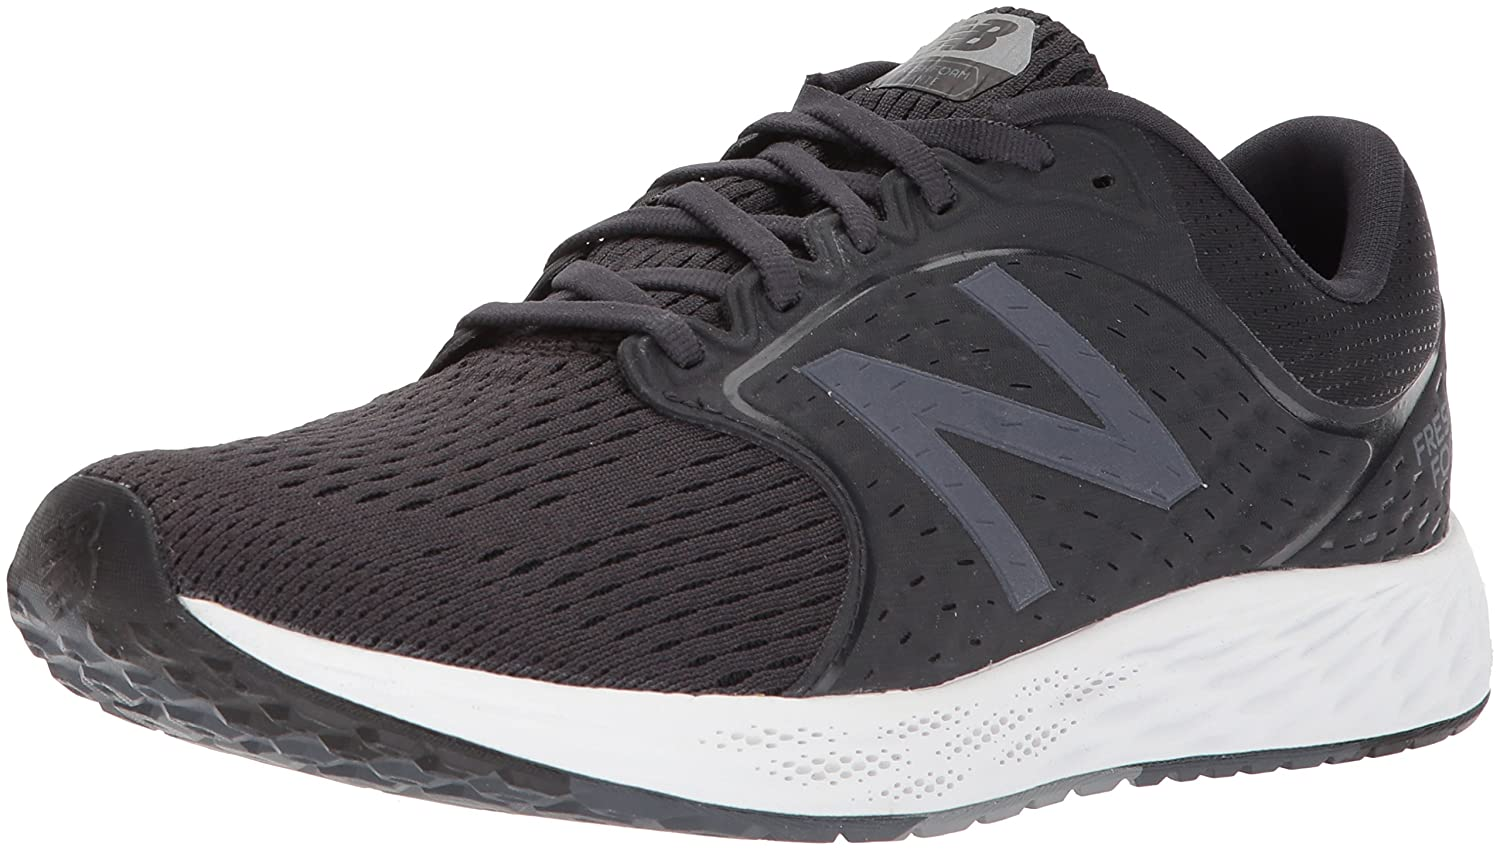 New Balance Men's Zante V4 Running Shoe B06XSD3911 9 2E US|Black